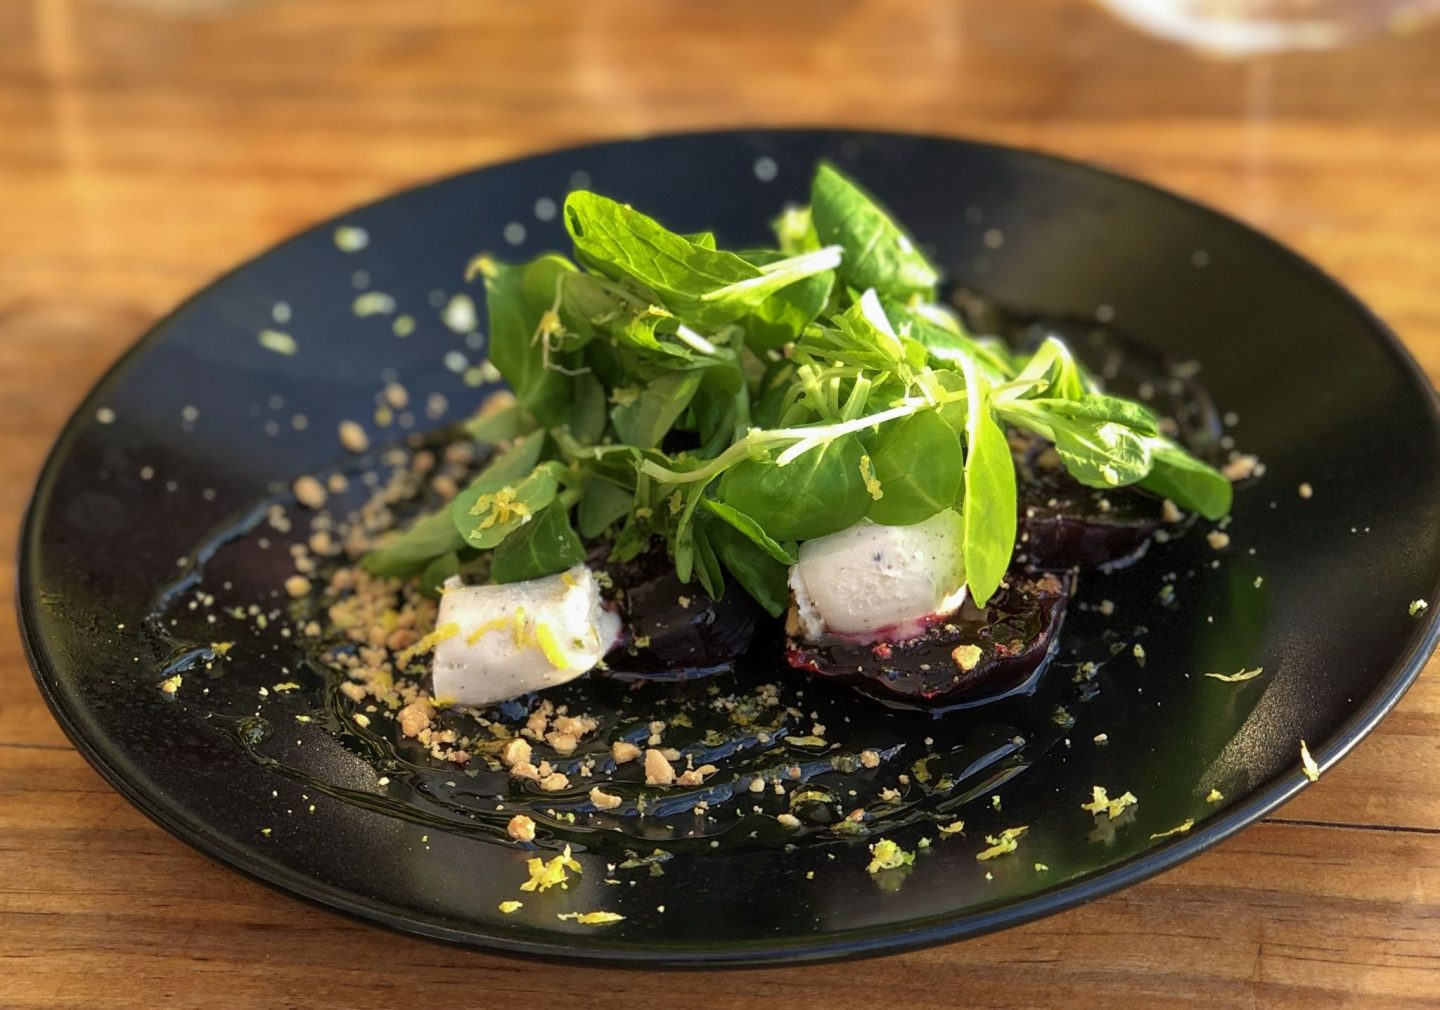 Beetroot and goats cheese on a black plate in Gran Canaria